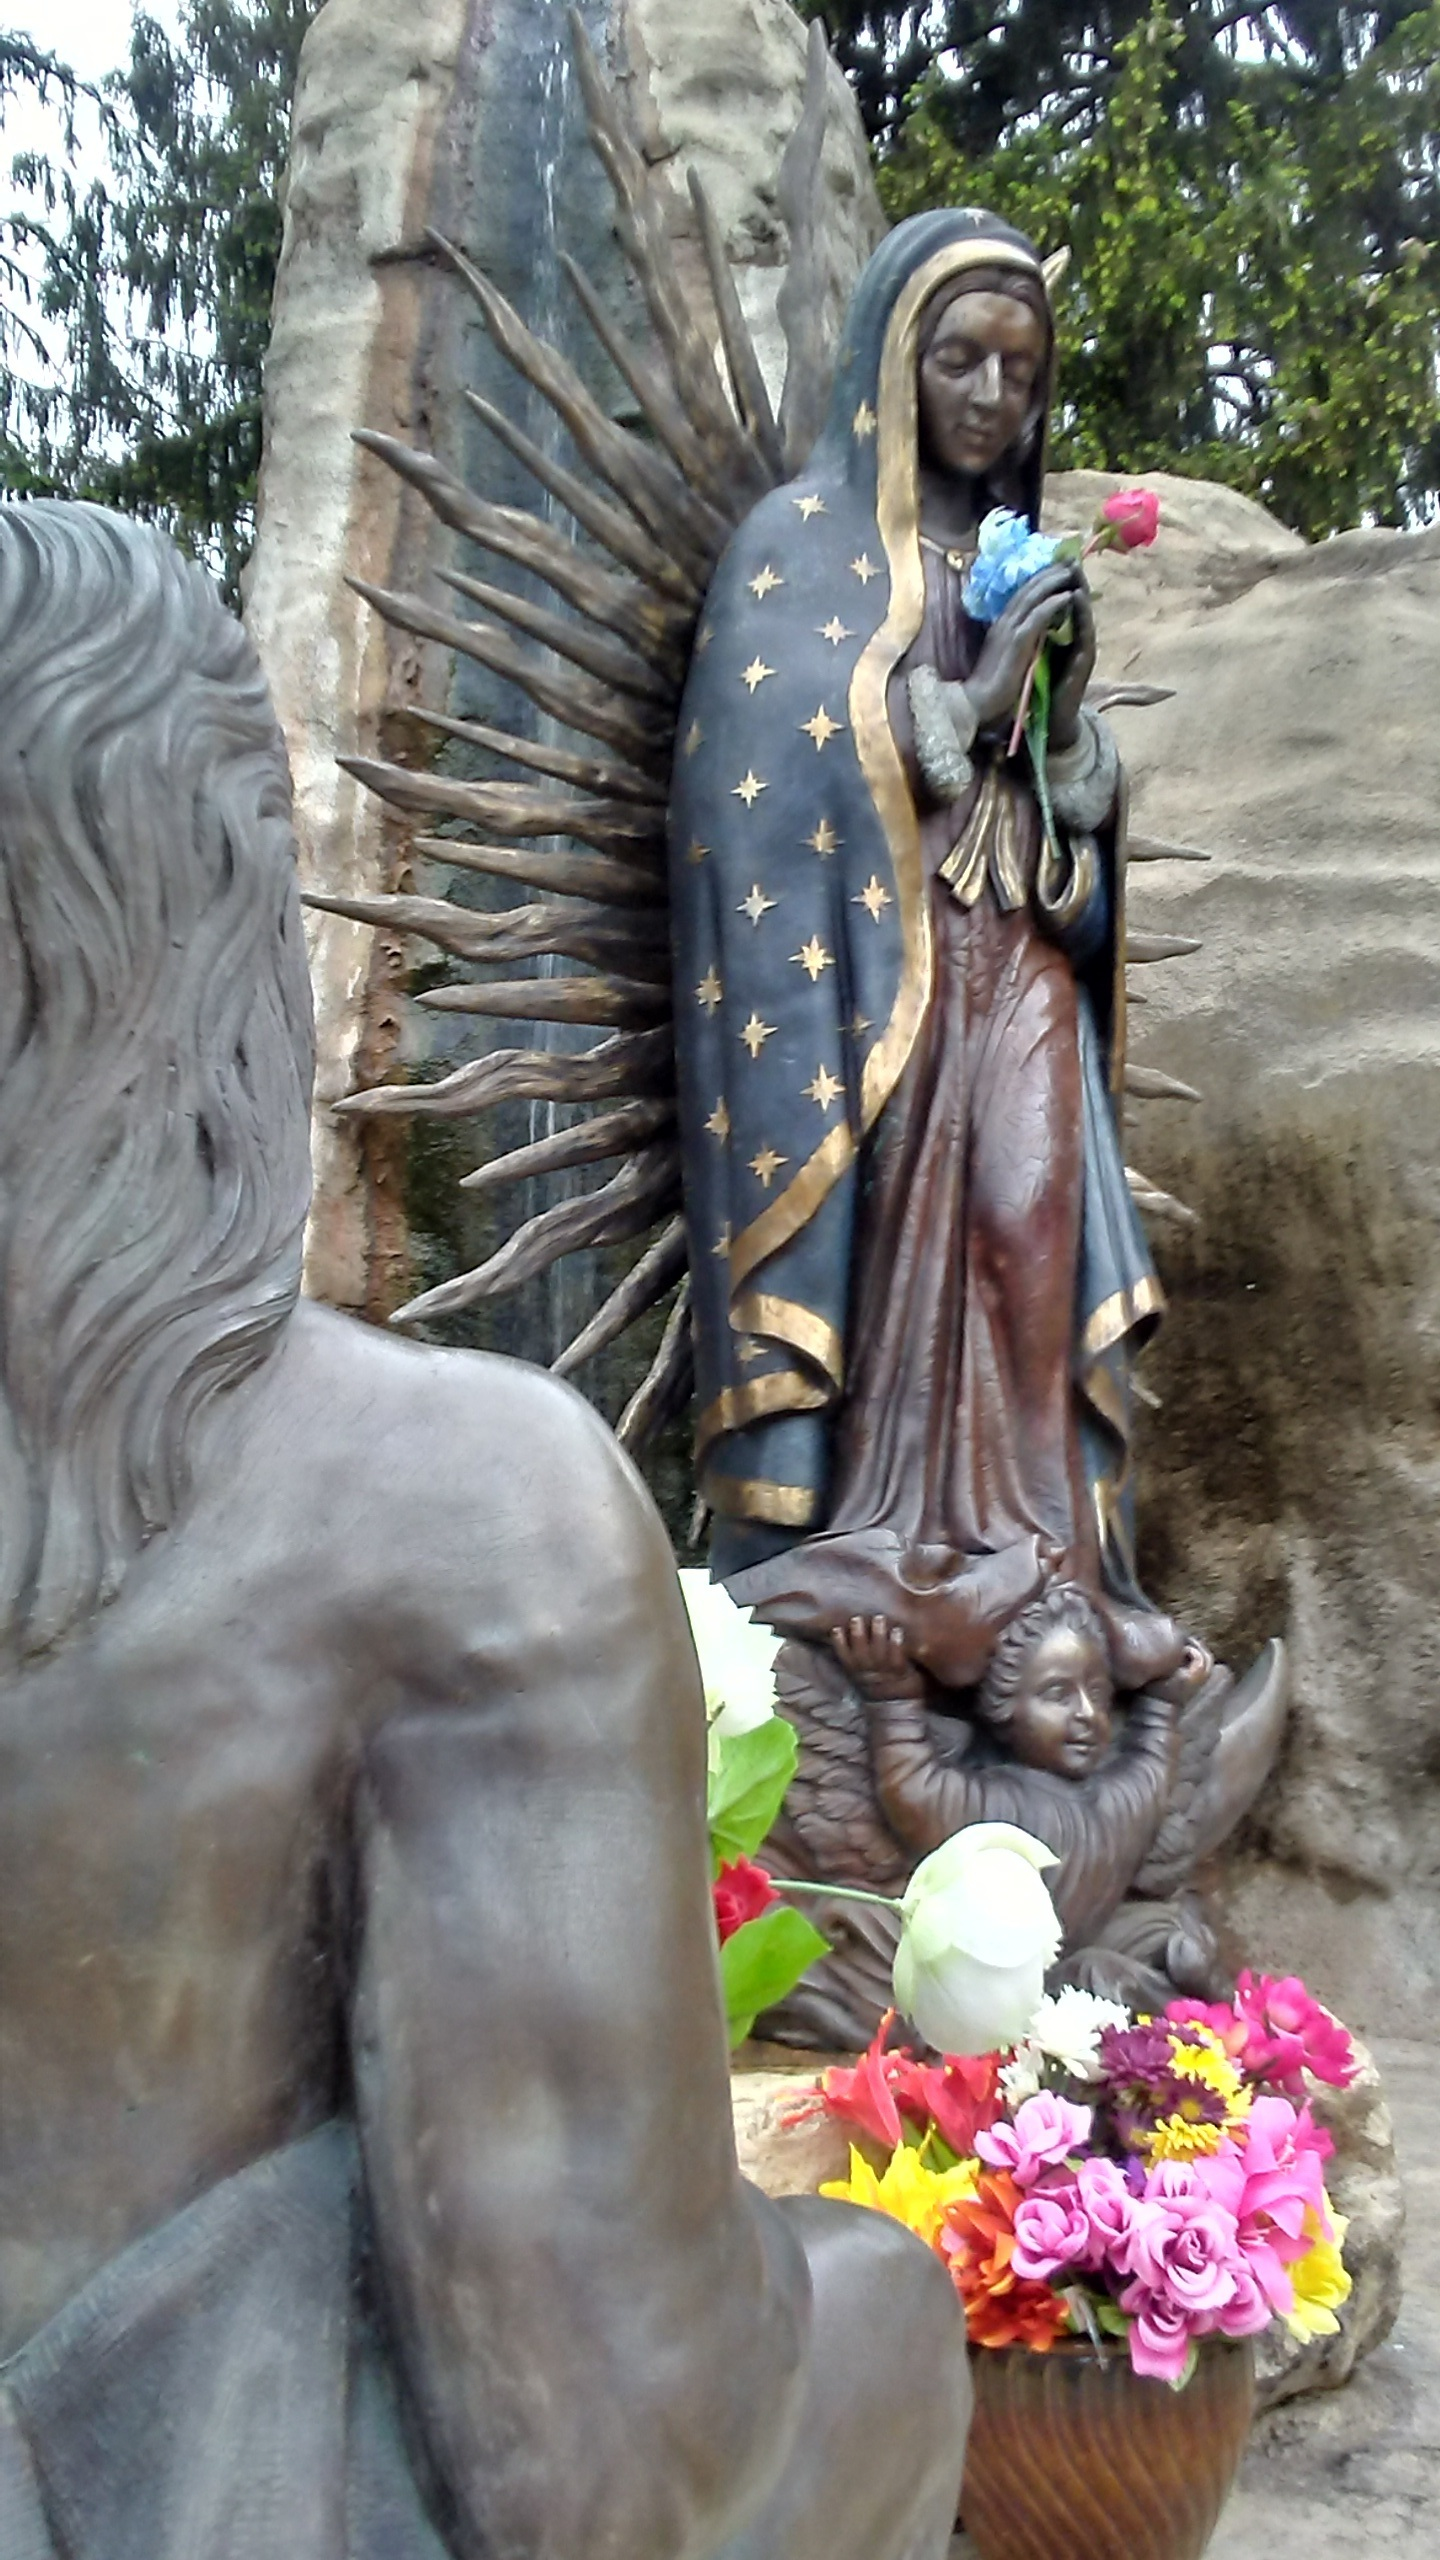 statue of St Juan Diego gazing upon Our Lady of Guadalupe